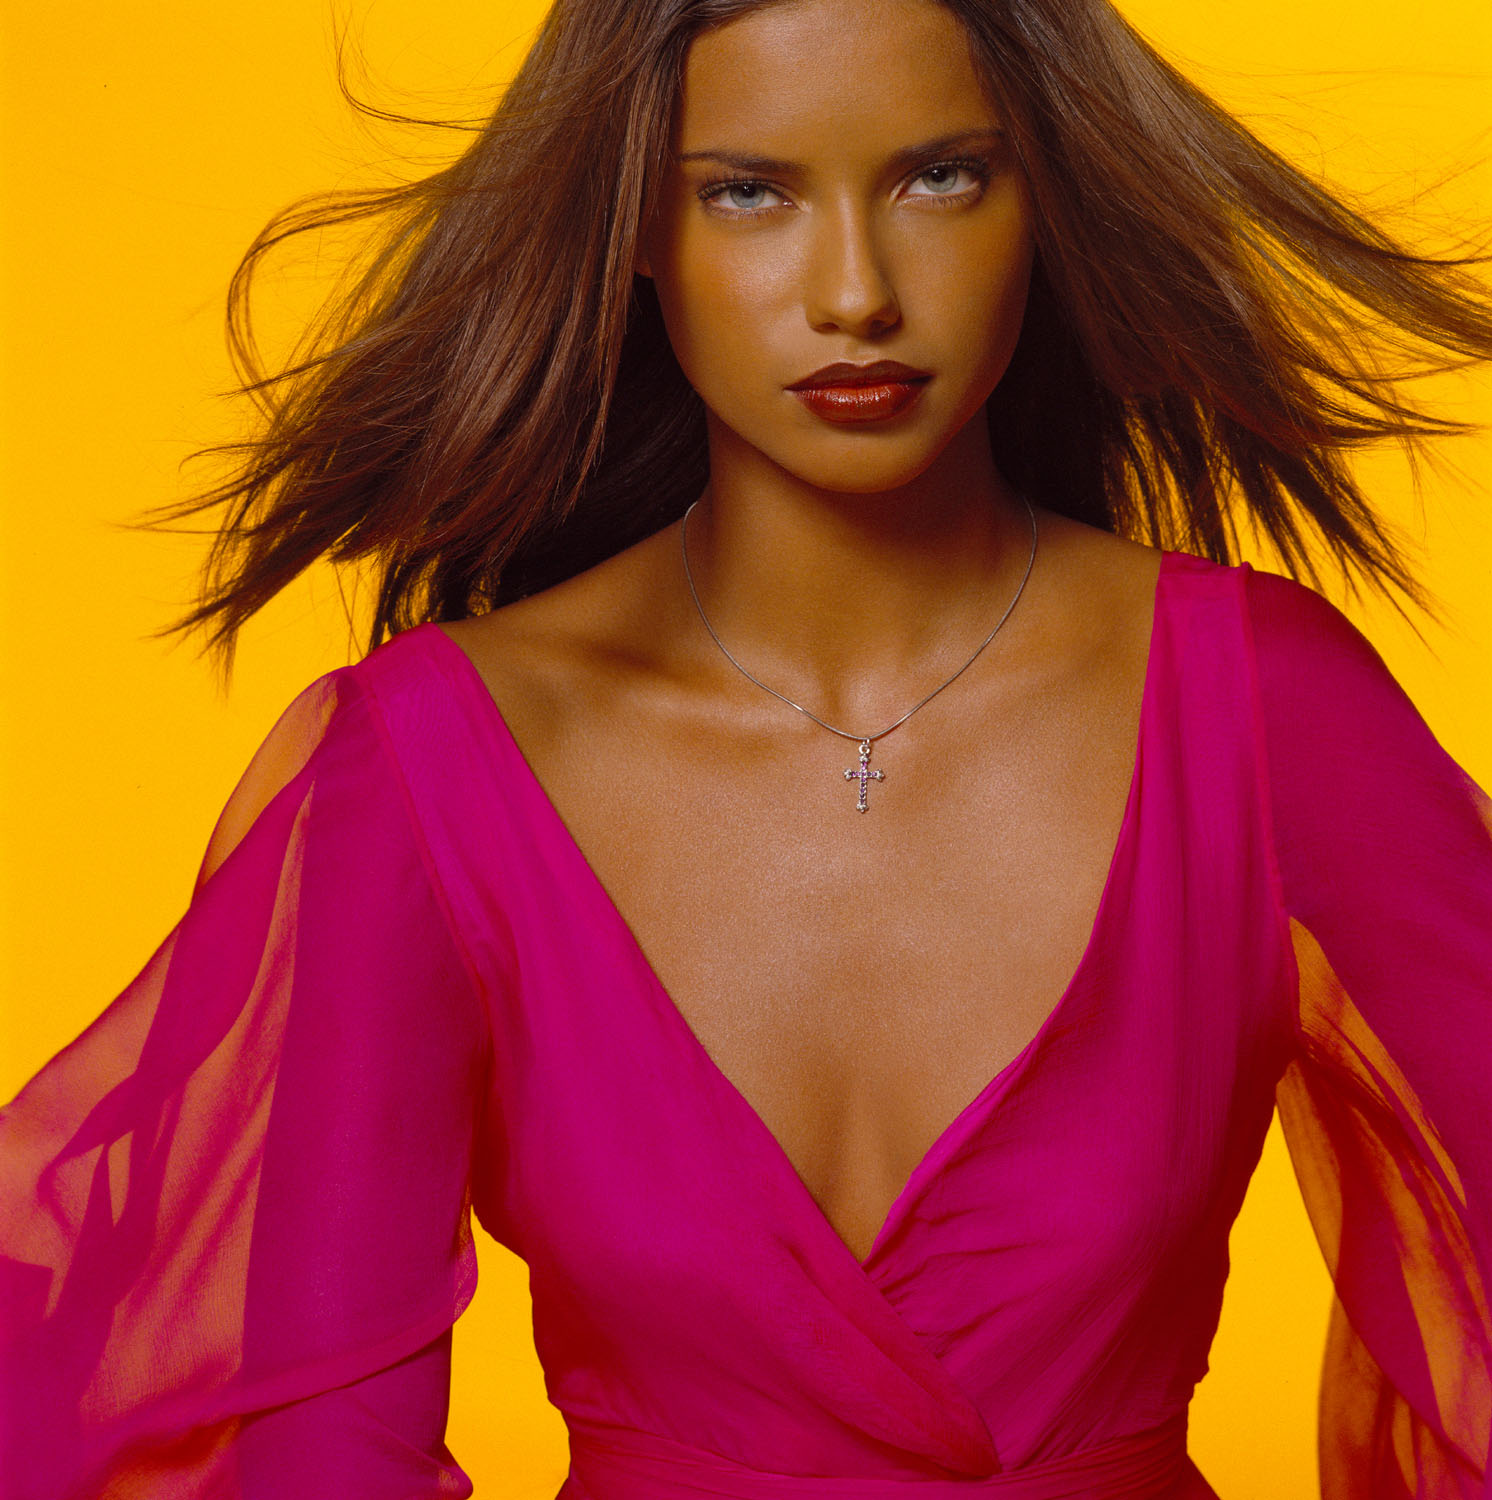 Adriana Lima News, Pictures, and Videos m Adriana lima photos gallery